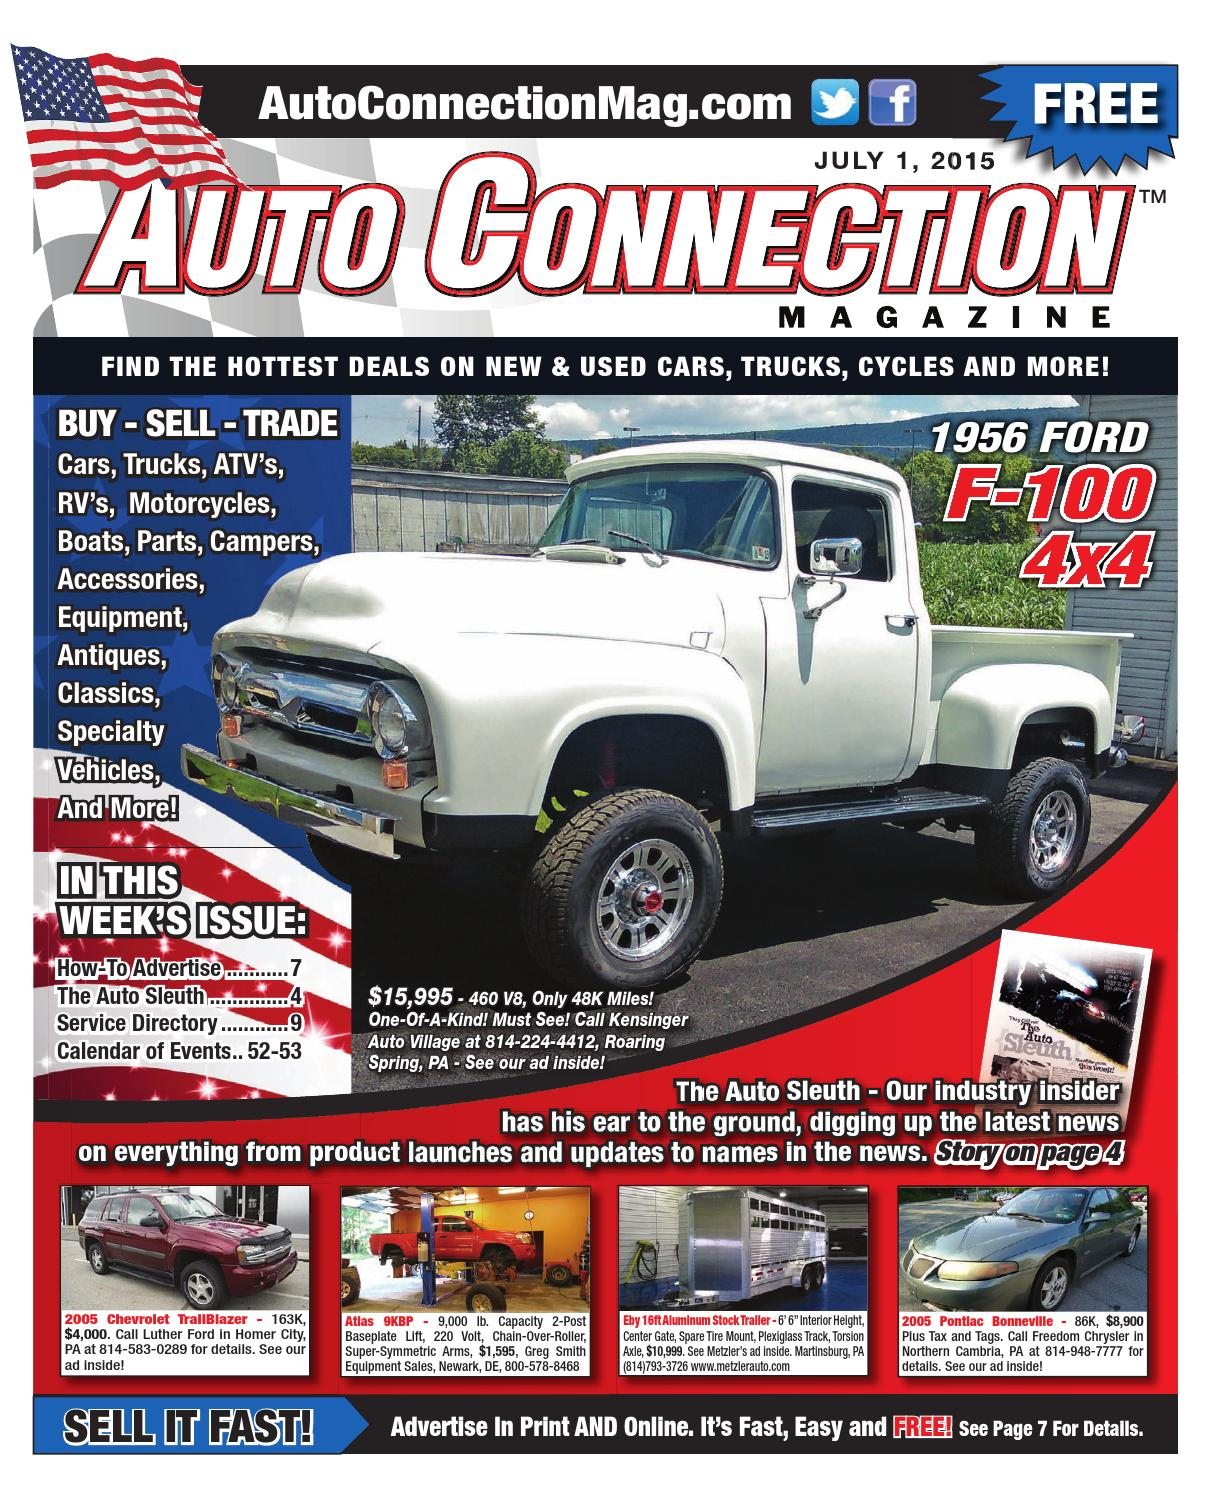 07 01 15 Auto Connection Magazine By Issuu Diy Eliminate Guages Headlight Signal Harness Switch 600rrnet